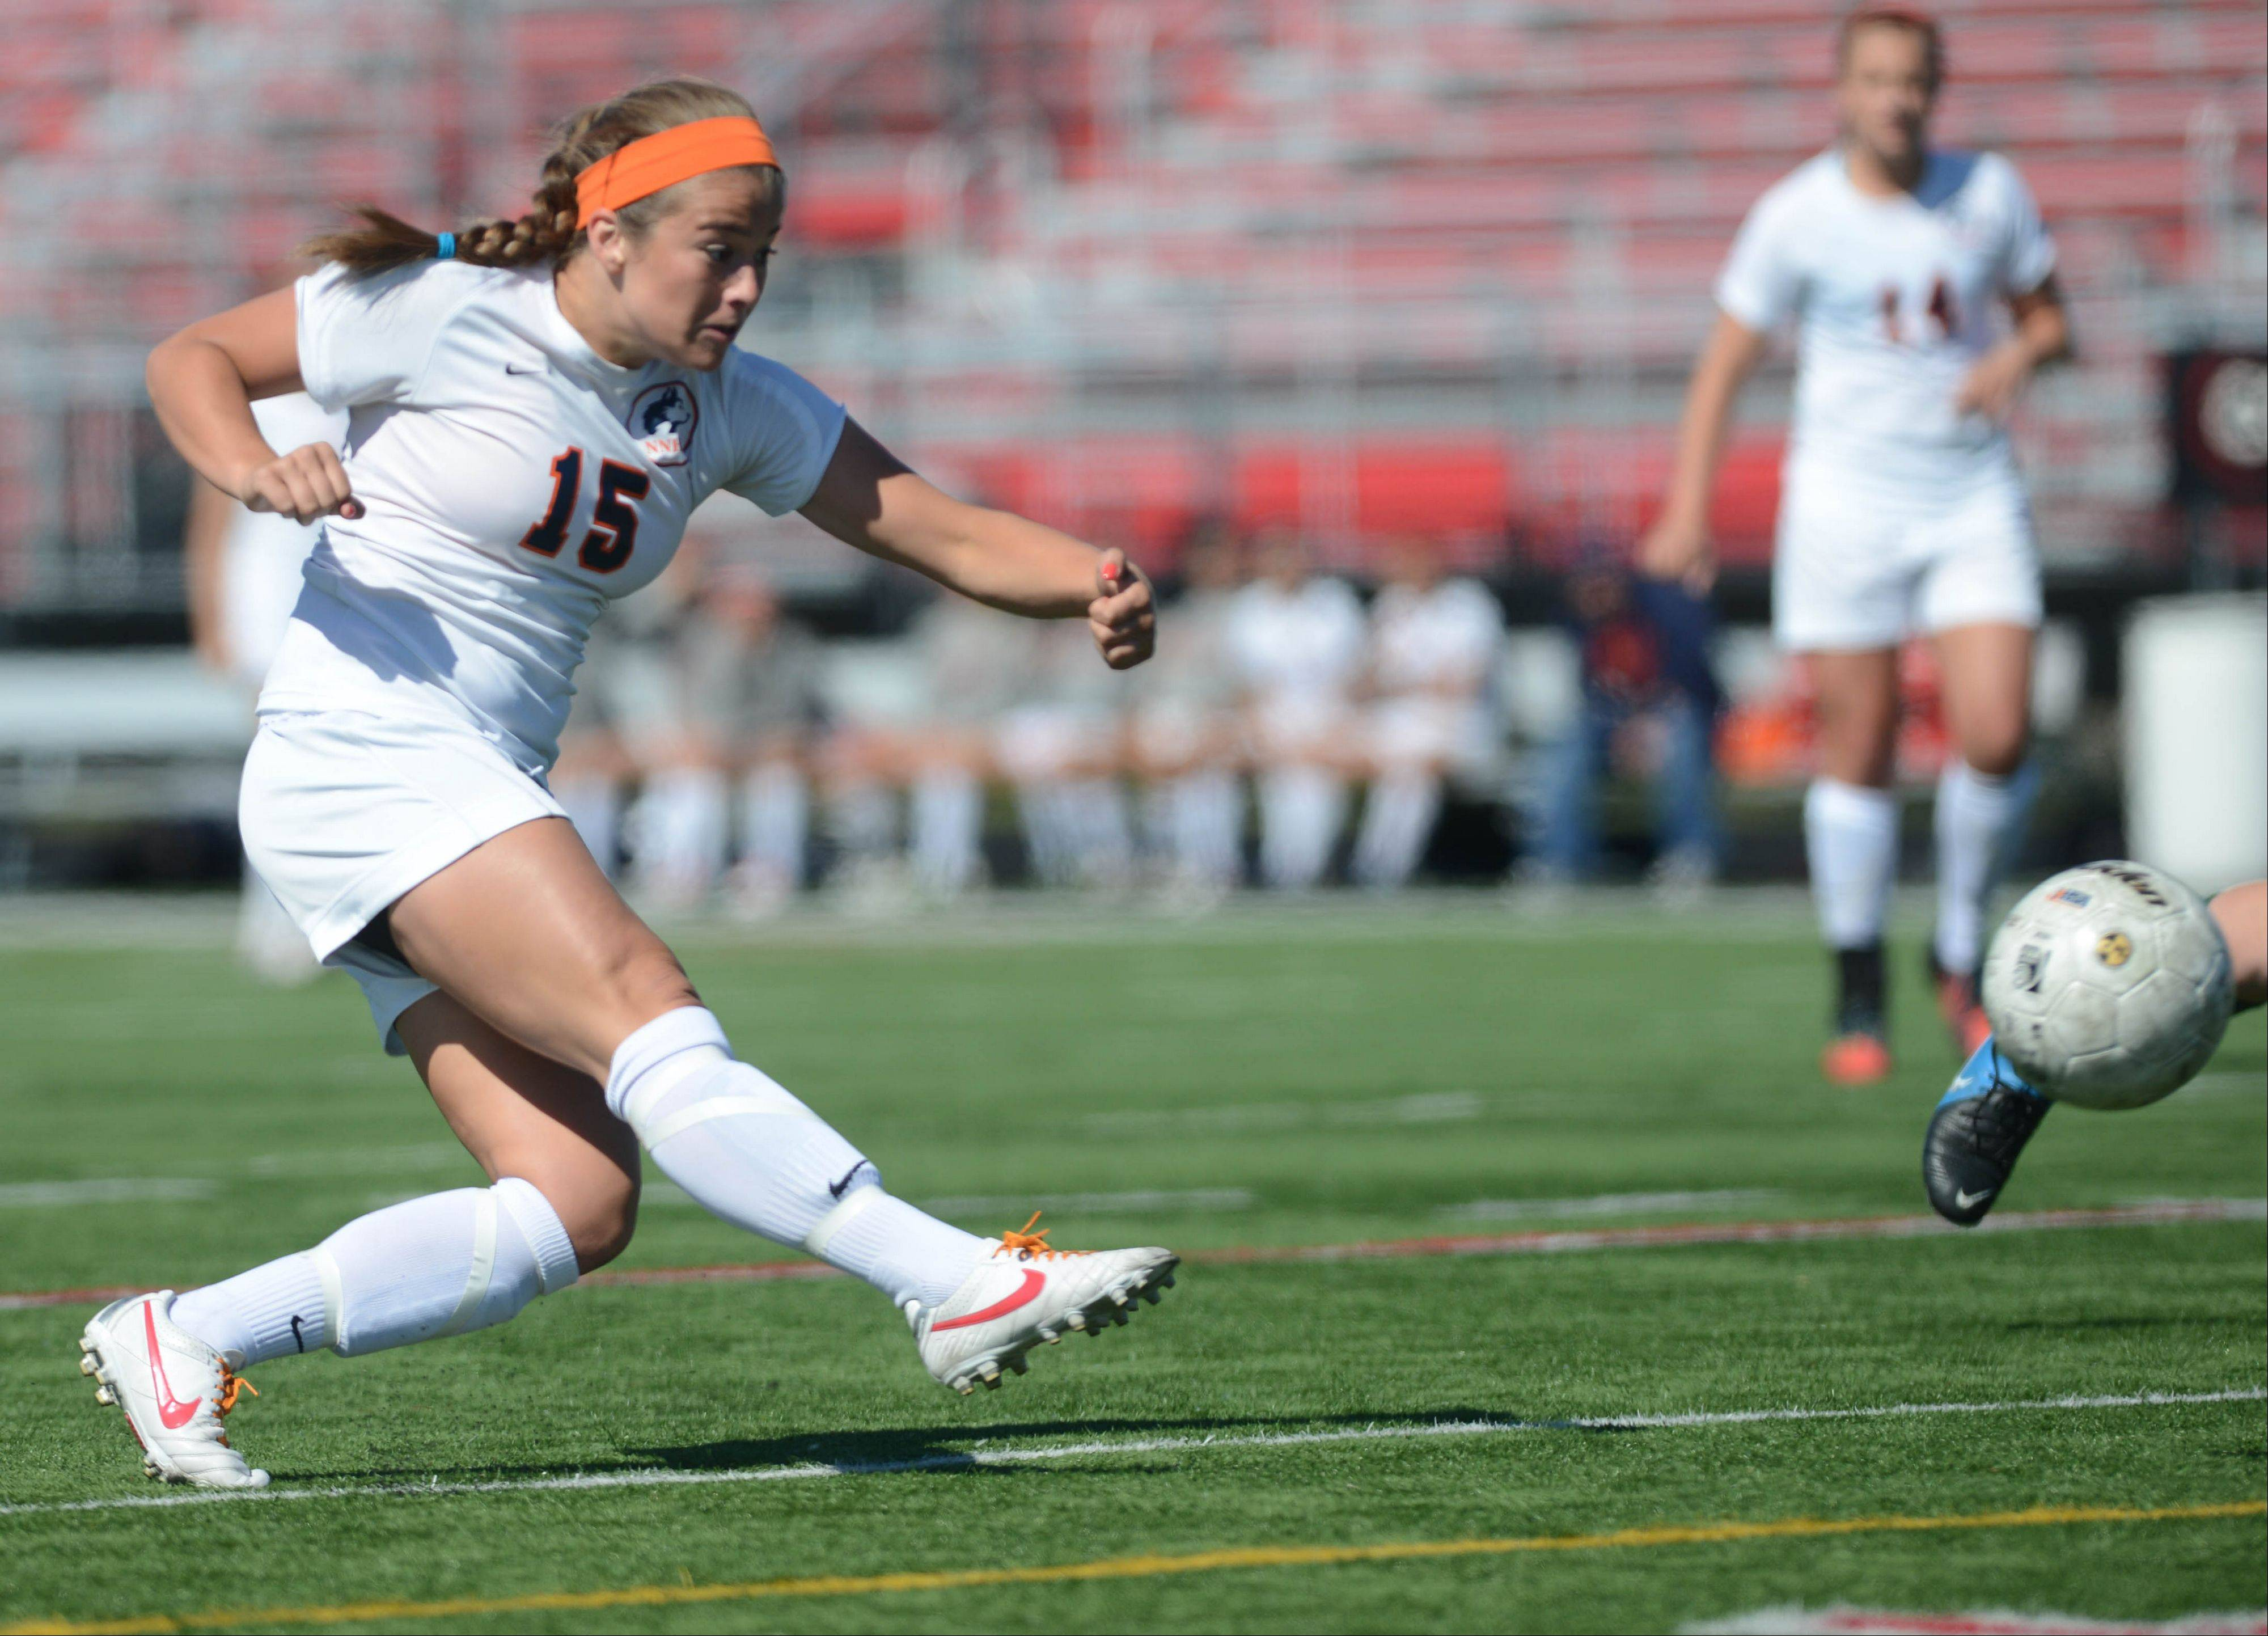 Cora Climo of Naperville North takes a shot during the Class 3A Bolingbrook girls soccer sectional final Friday.